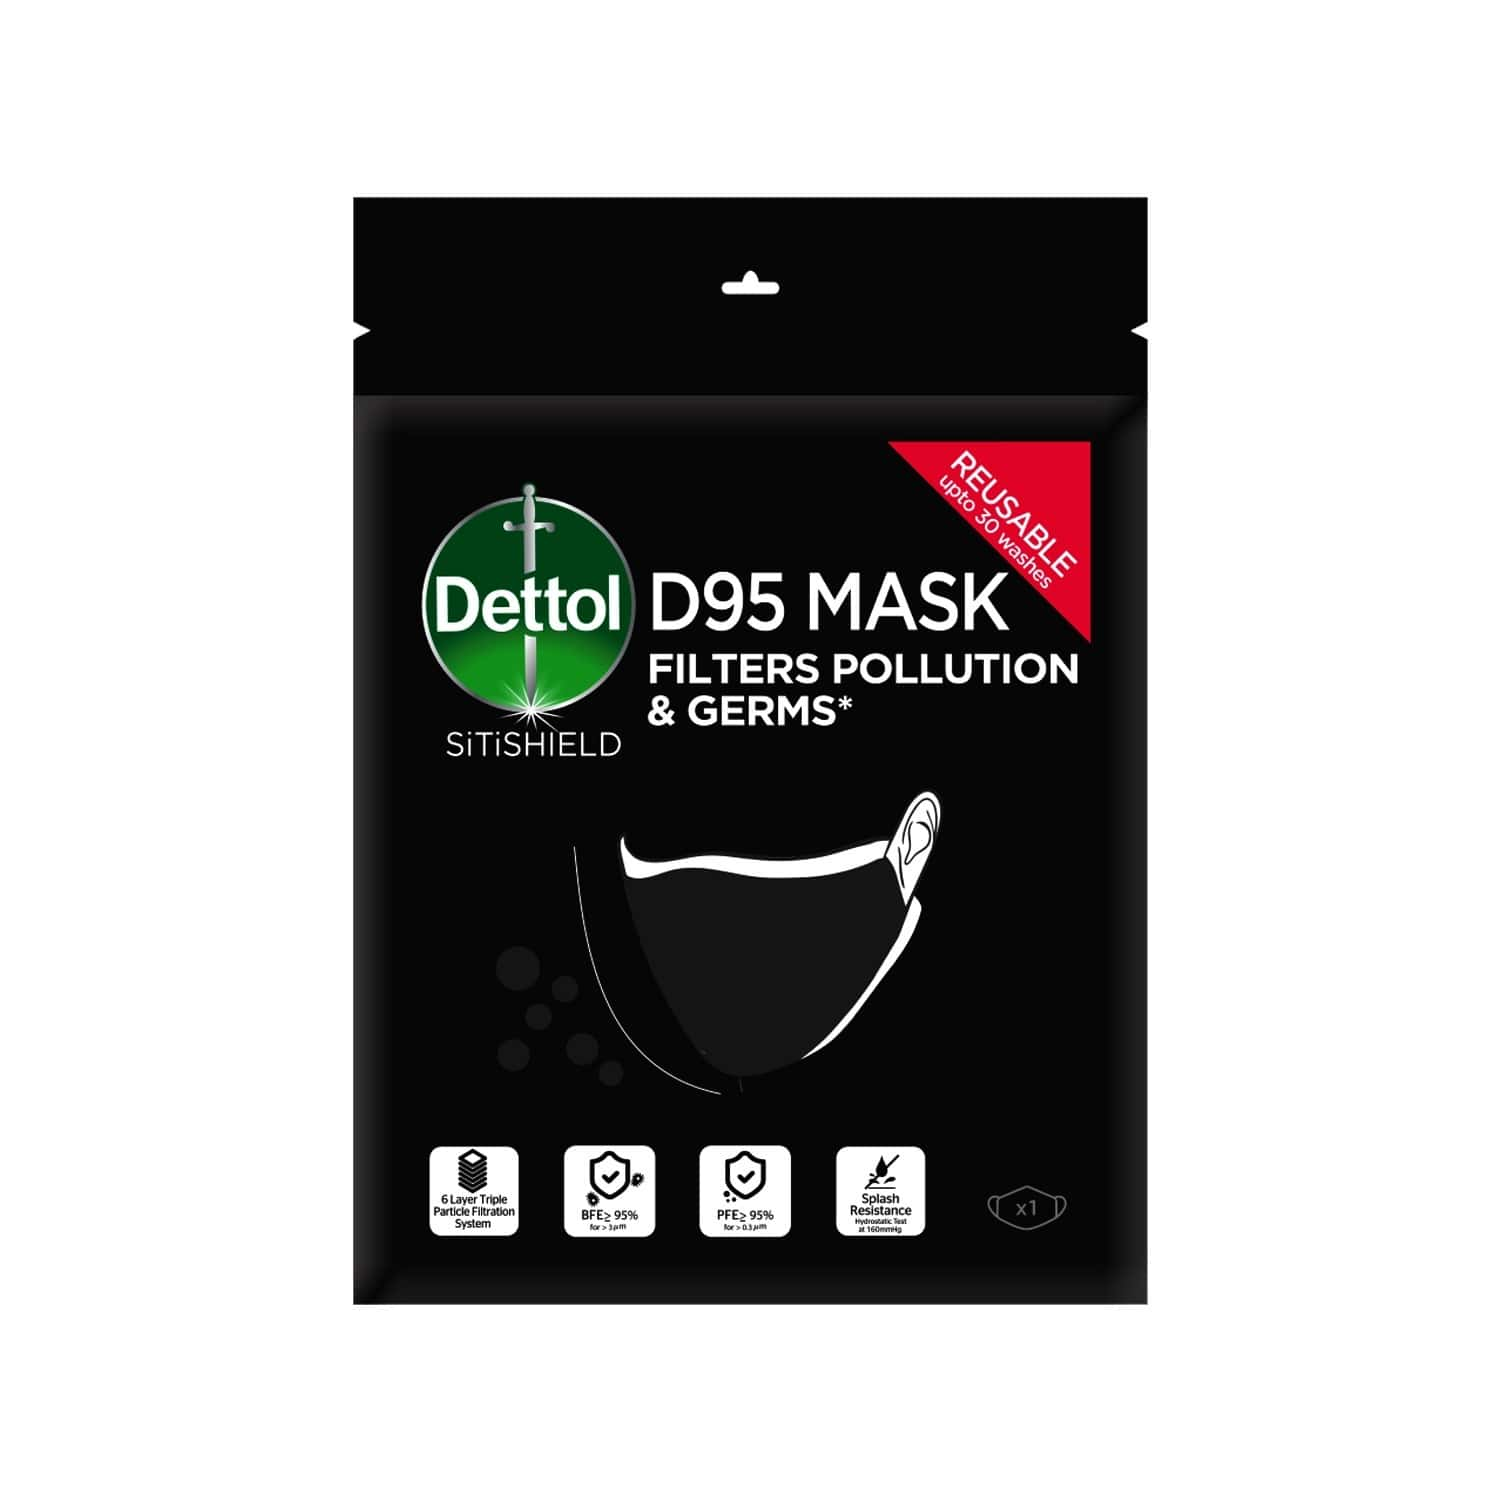 Dettol D95 Mask For Protection From Bacteria, Germs & Pollution Reusable & Washable - Large - Pack Of 1